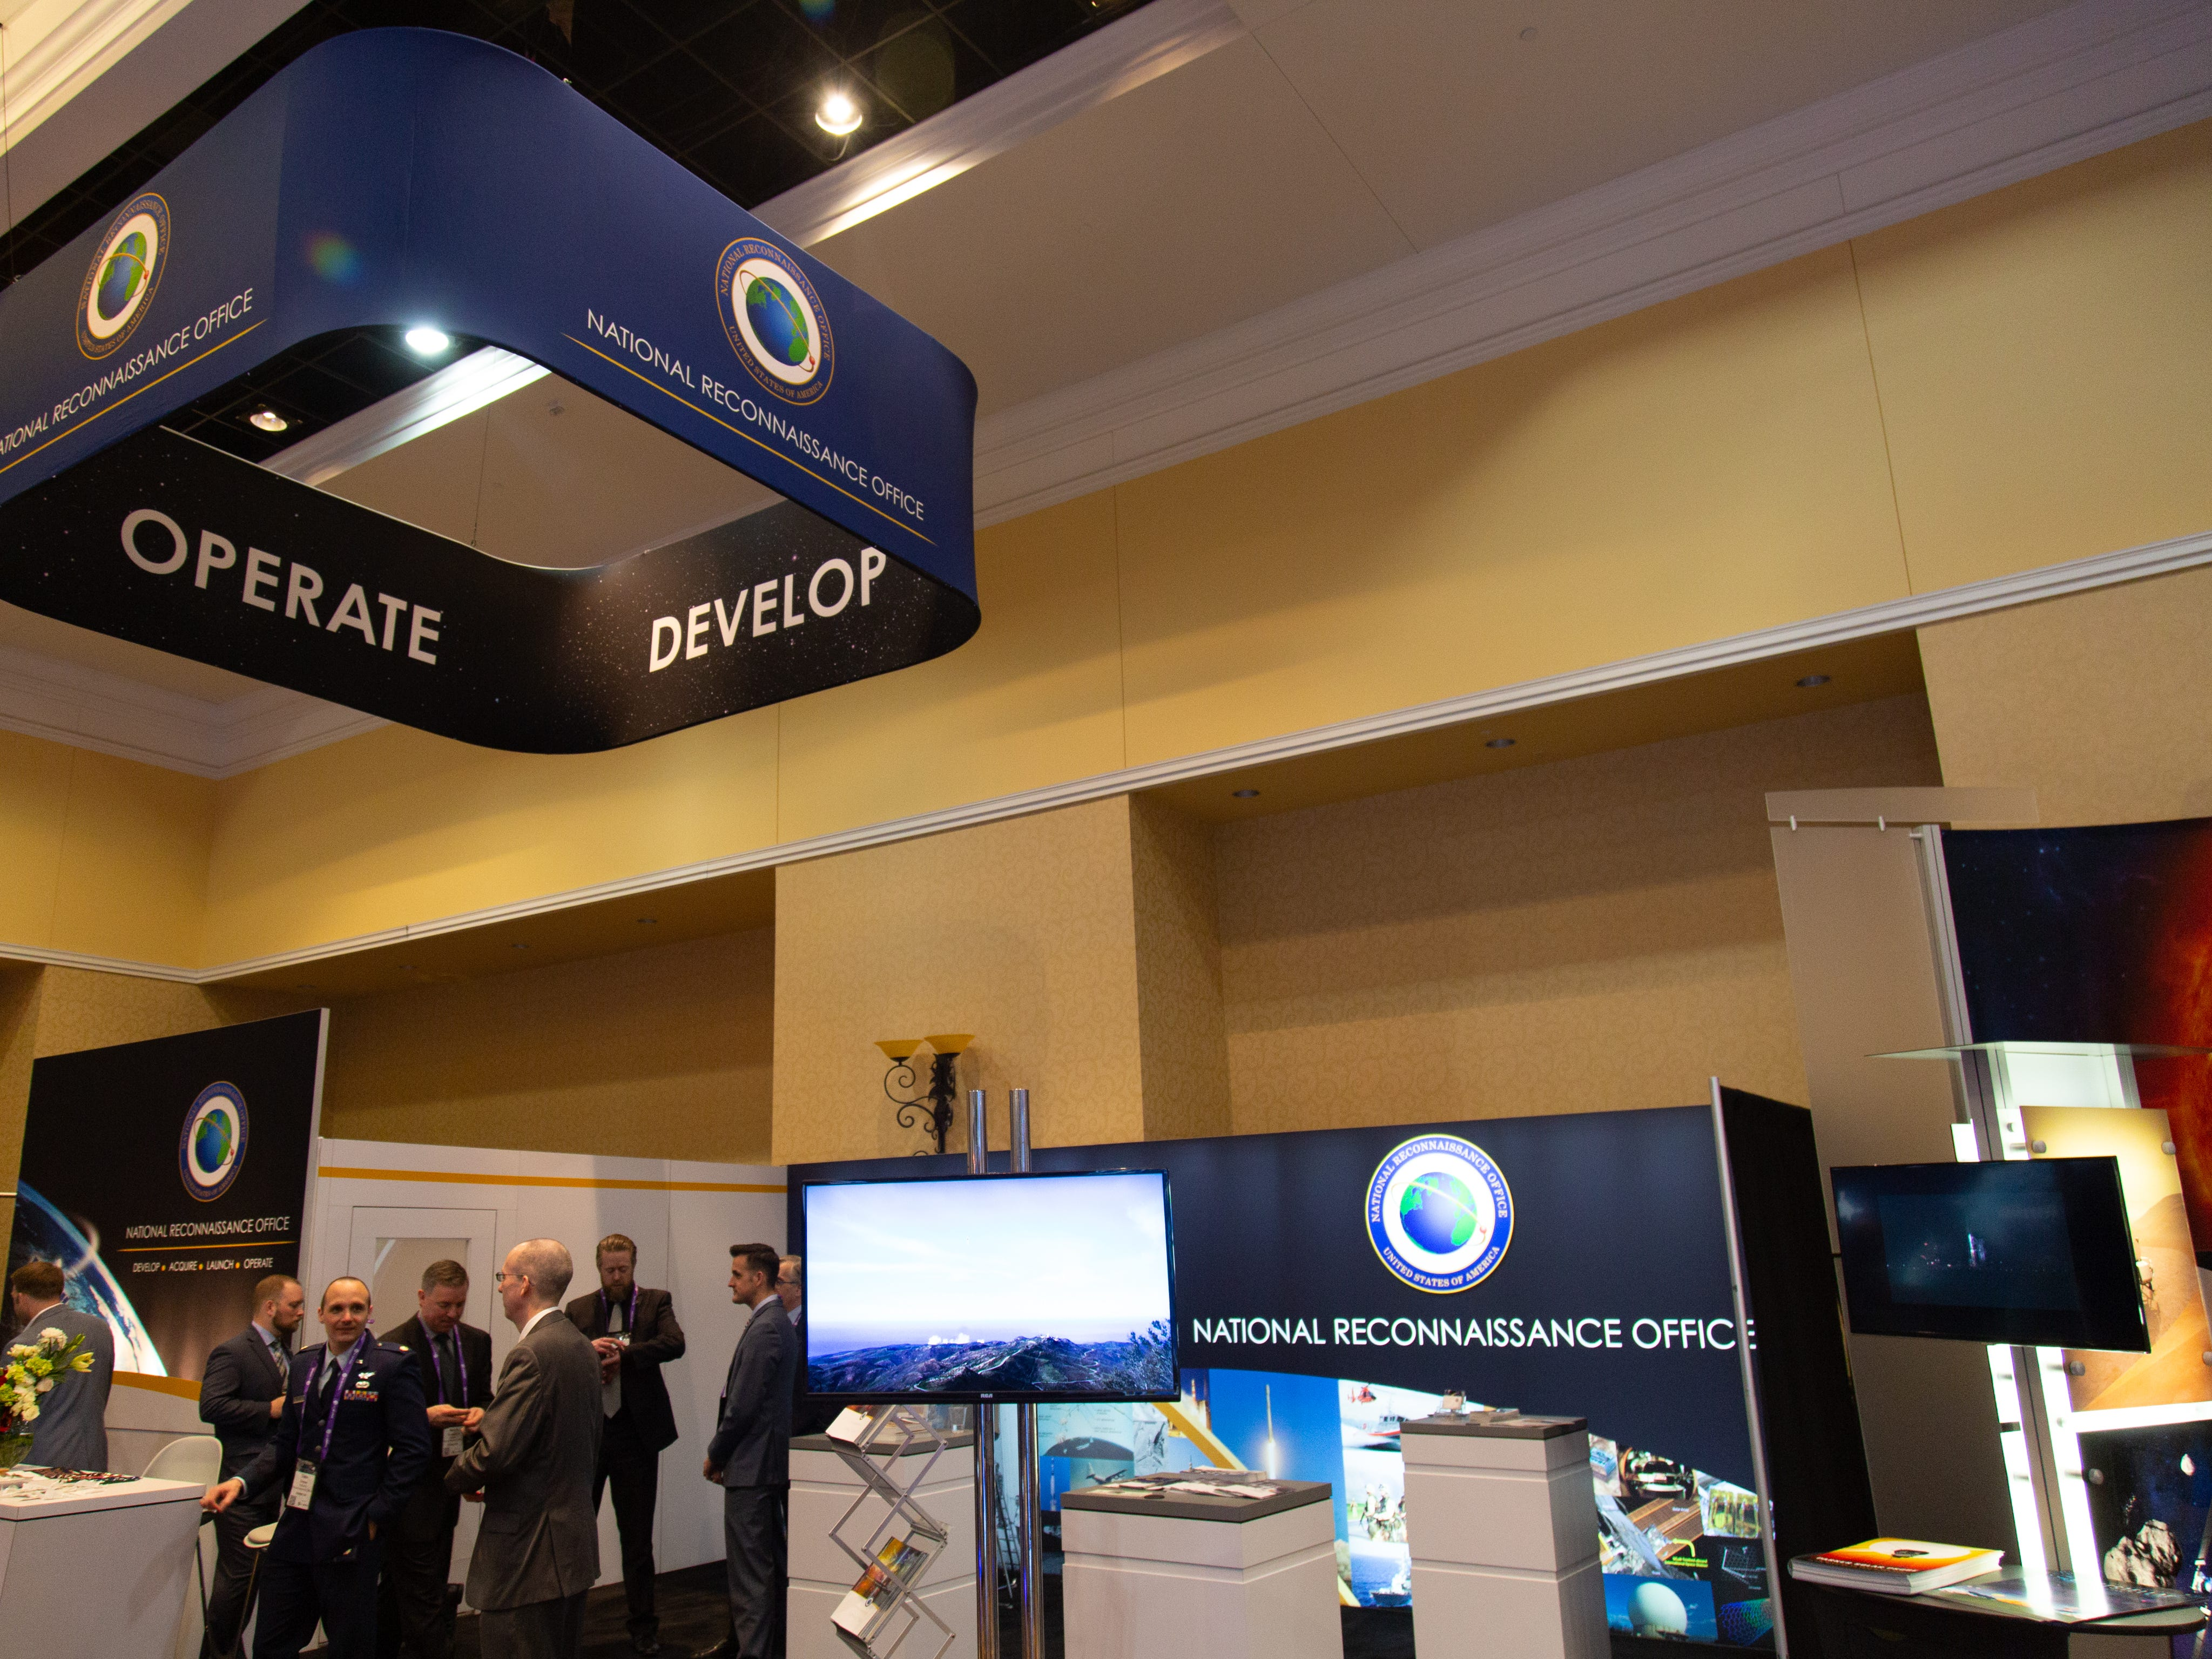 The secretive National Reconnaissance Office's booth at the 35th Space Symposium in Colorado Springs.